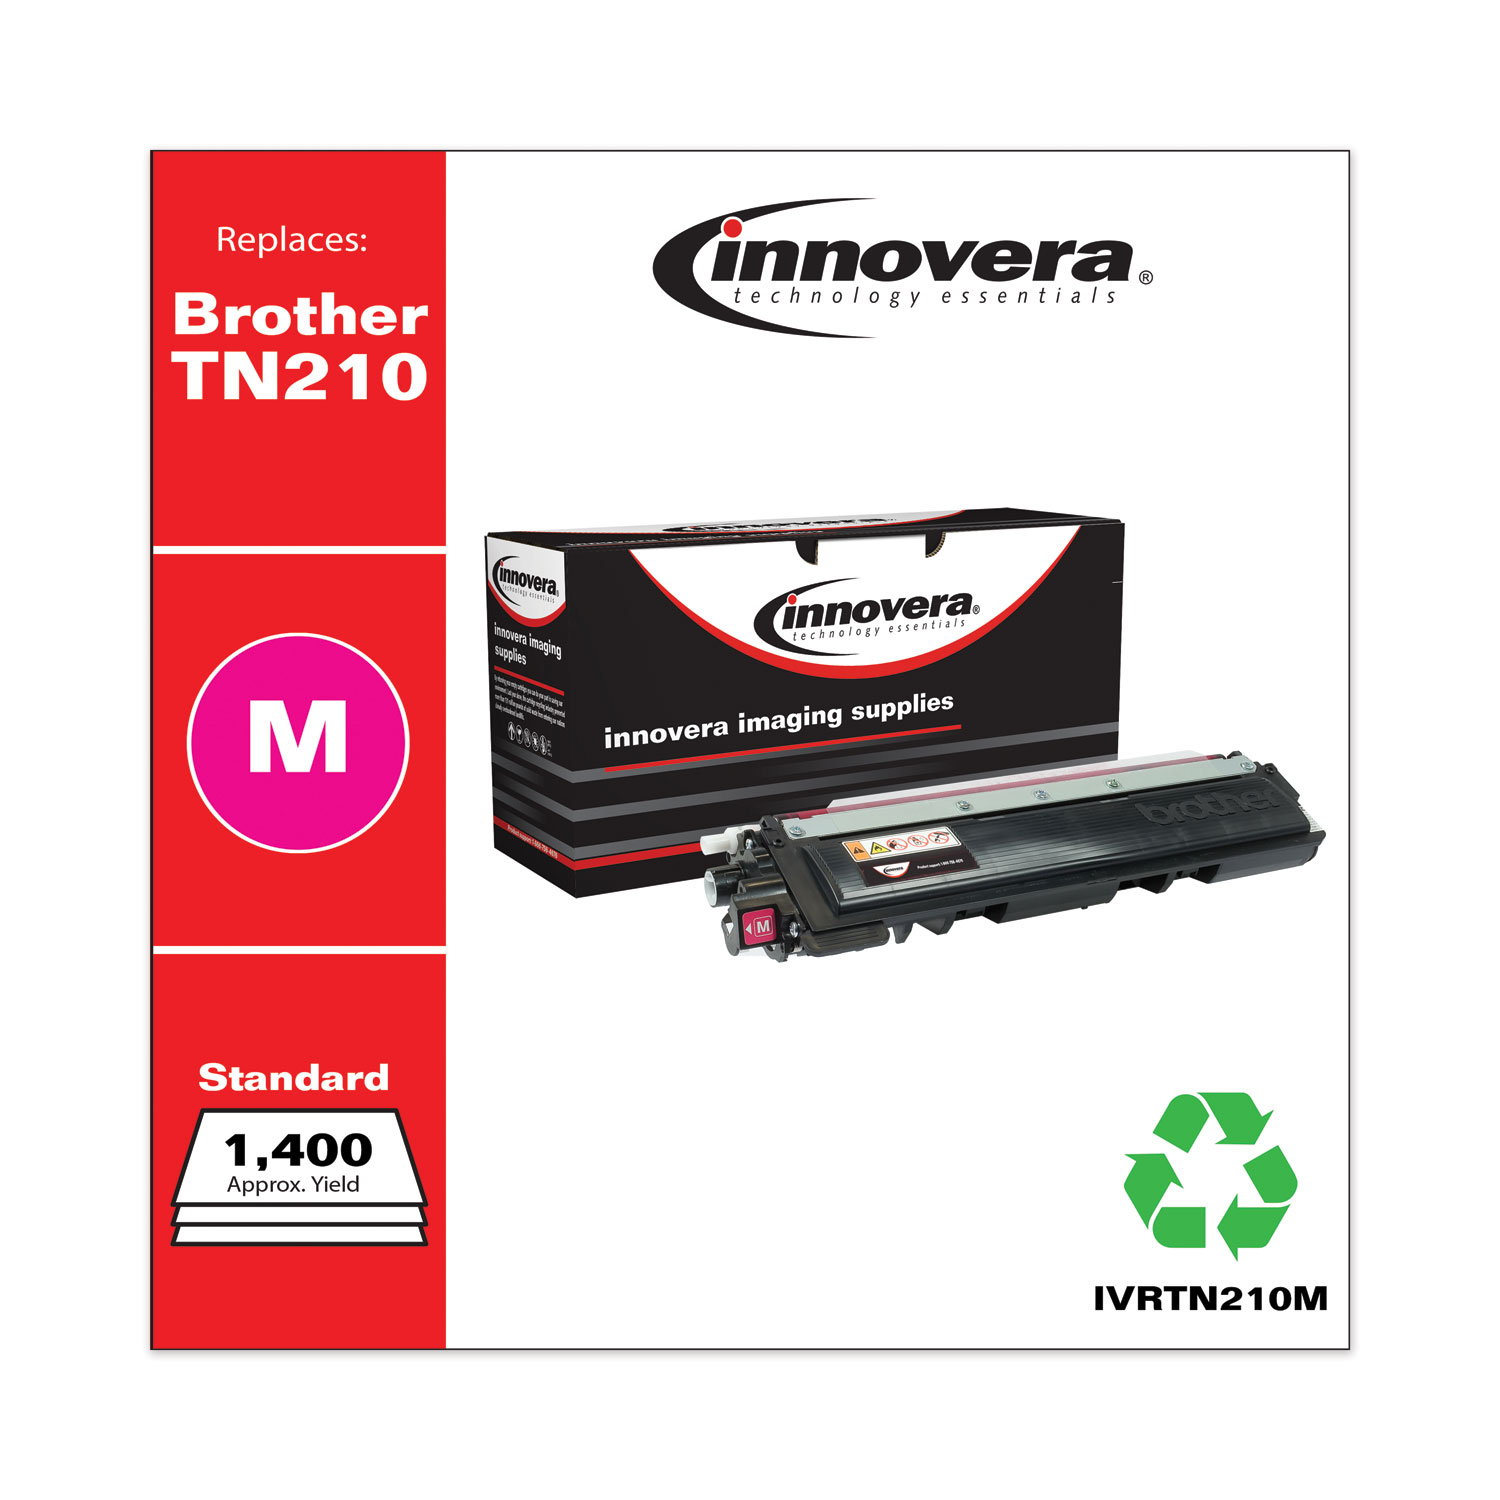 Remanufactured Magenta Toner, Replacement for Brother TN210M, 1,400 Page-Yield IVRTN210M